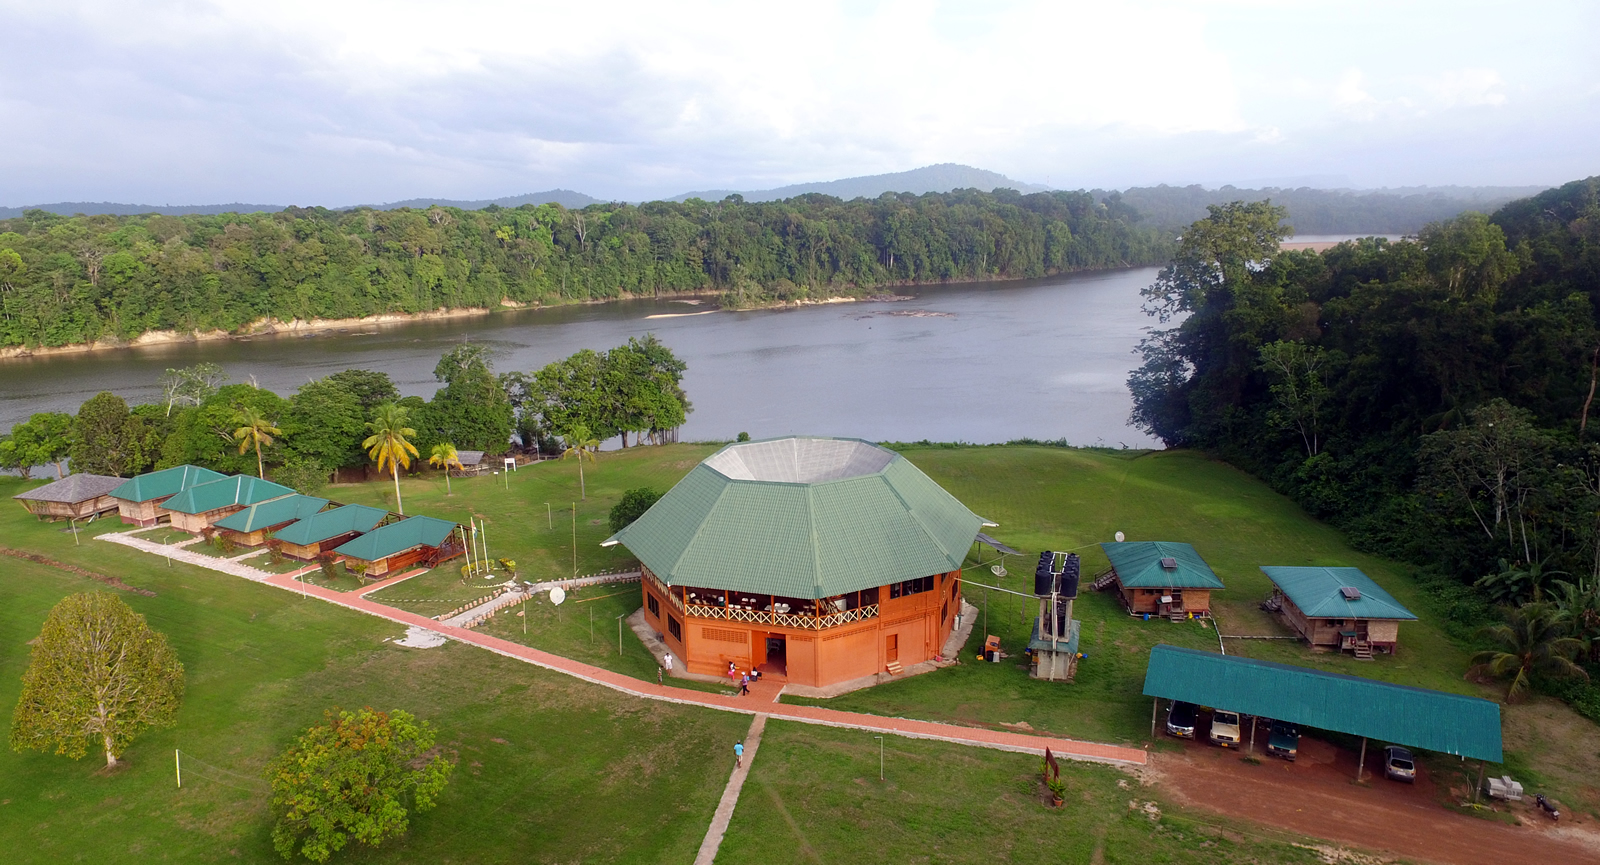 Photo: Iwokrama forest in Guyana. Credit: Iwokrama International Centre for Rainforest Conservation and Development.